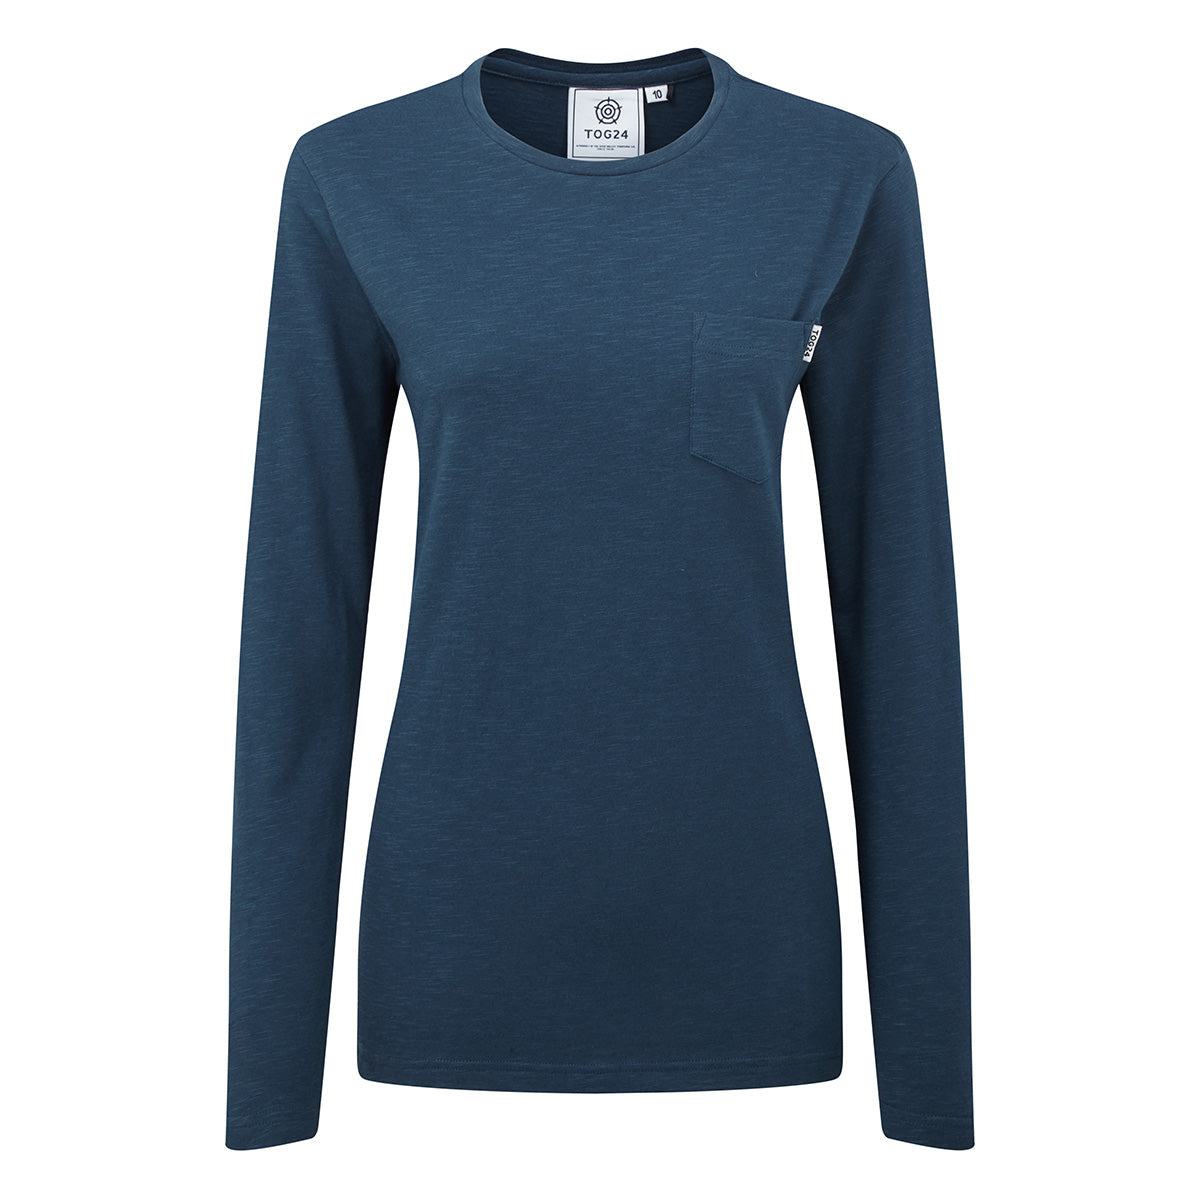 Myrtle Womens Long Sleeve Pocket T-Shirt - Atlantic Blue image 4